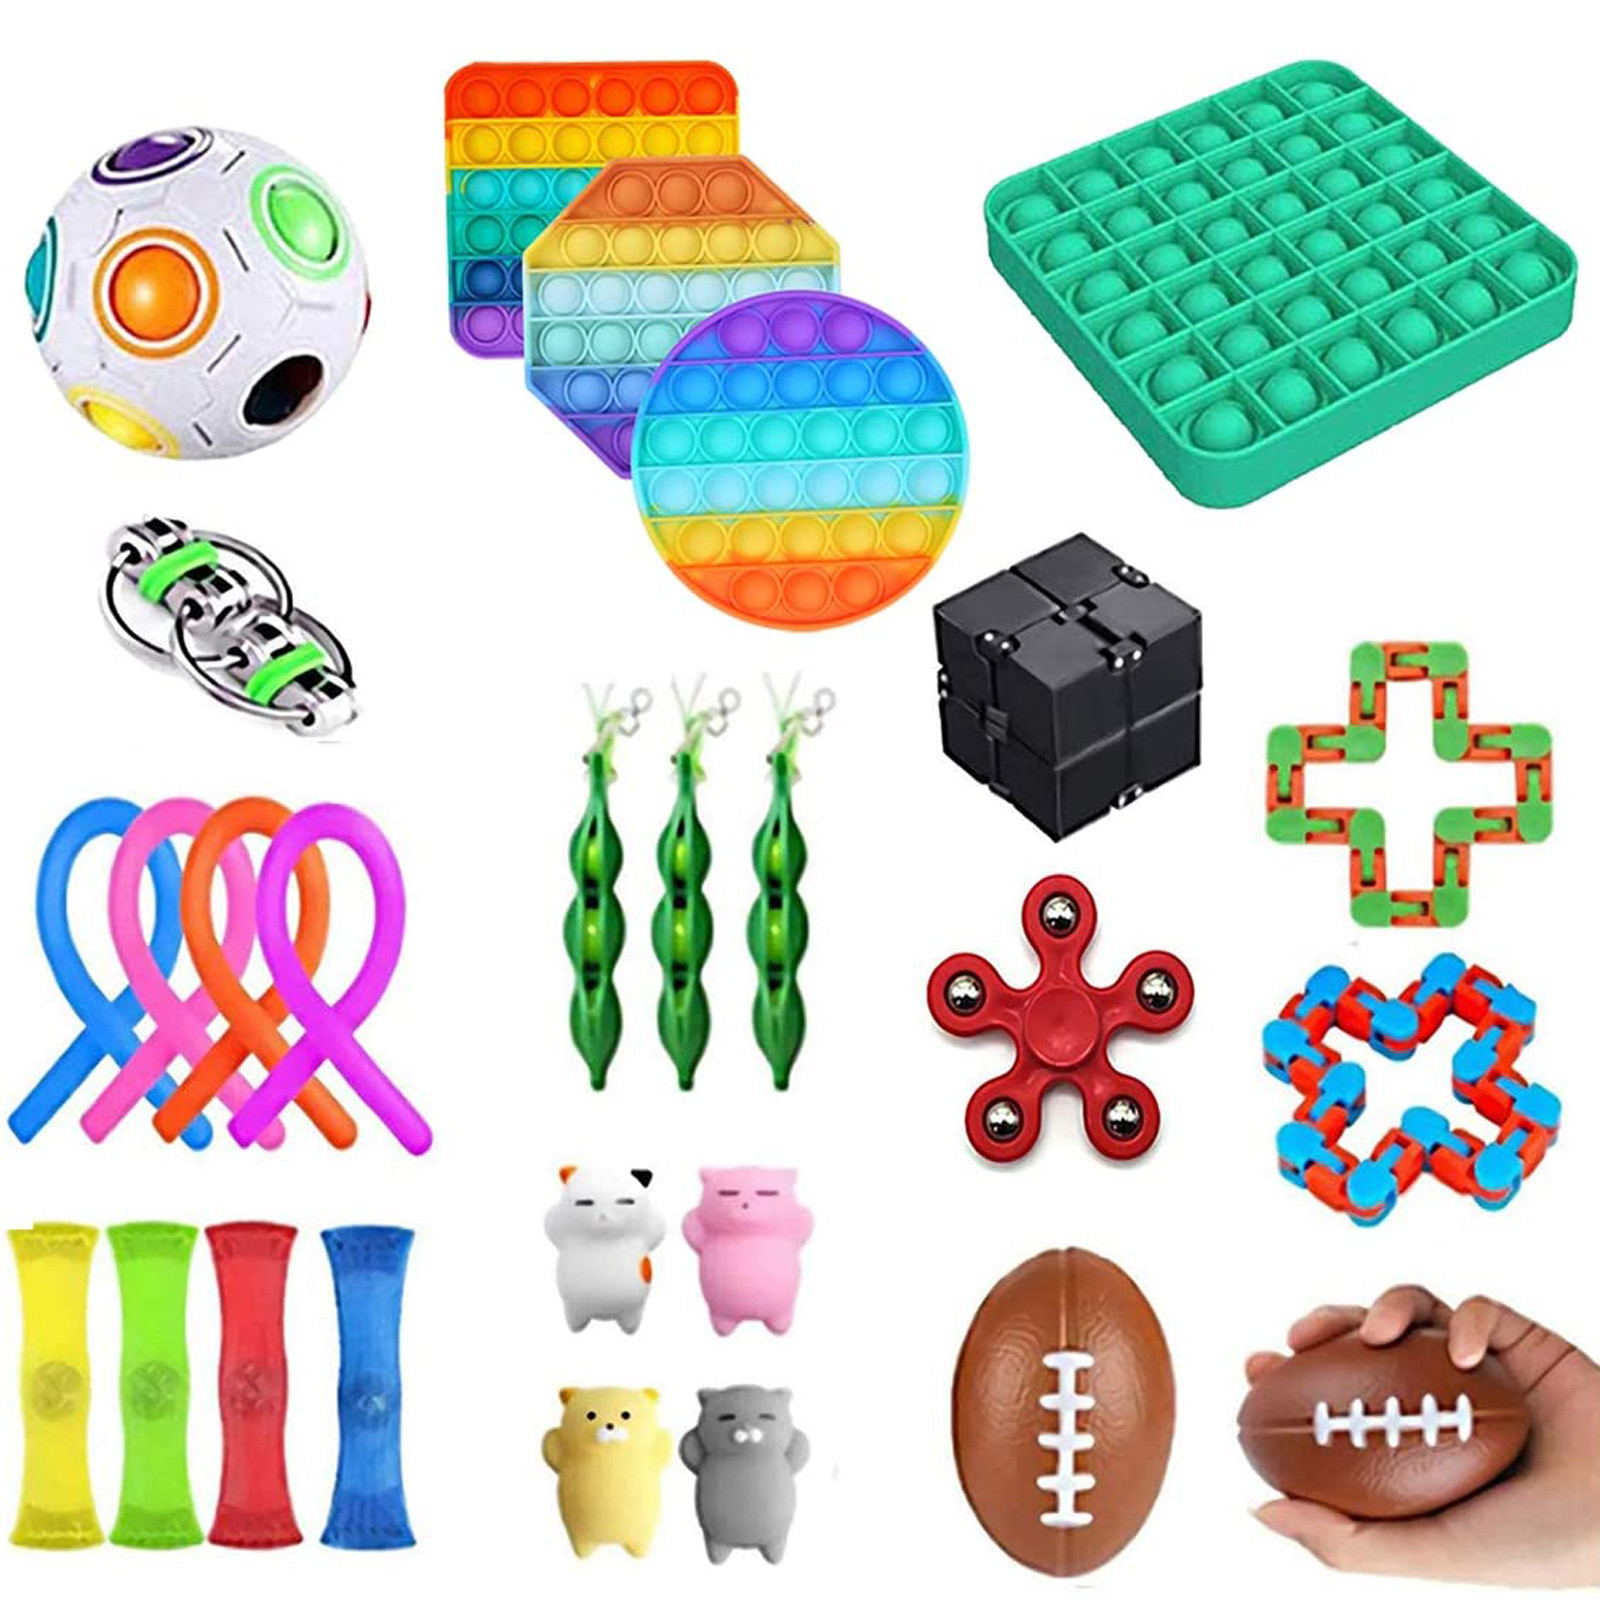 Fidget-Toys Strings Anti-Stress-Set Gift-Pack Relief Sensory Squishy Pop-It Adults Stretchy img2